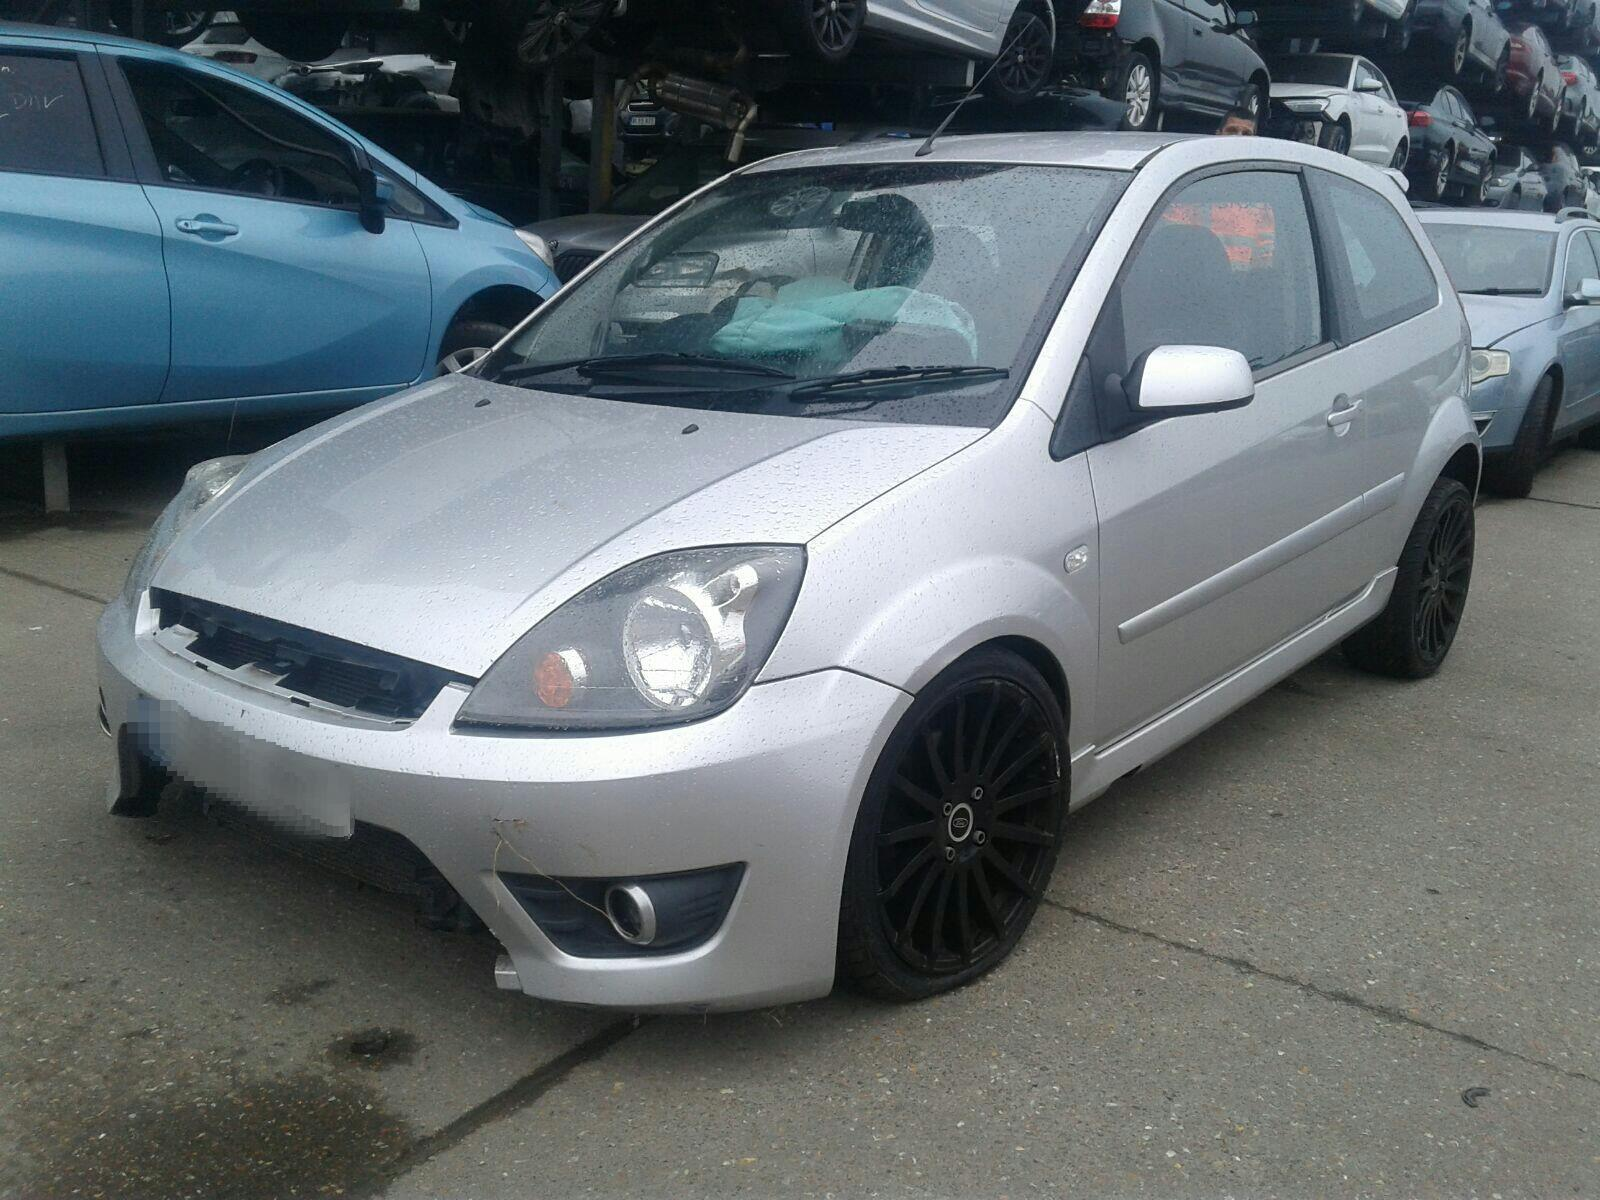 Synetiq 2008 Ford Fiesta Mk6 Fl B256 7 2002 To 2008 St 16v 3 Door Hatchback Petrol Manual Breaking For Used And Spare Parts